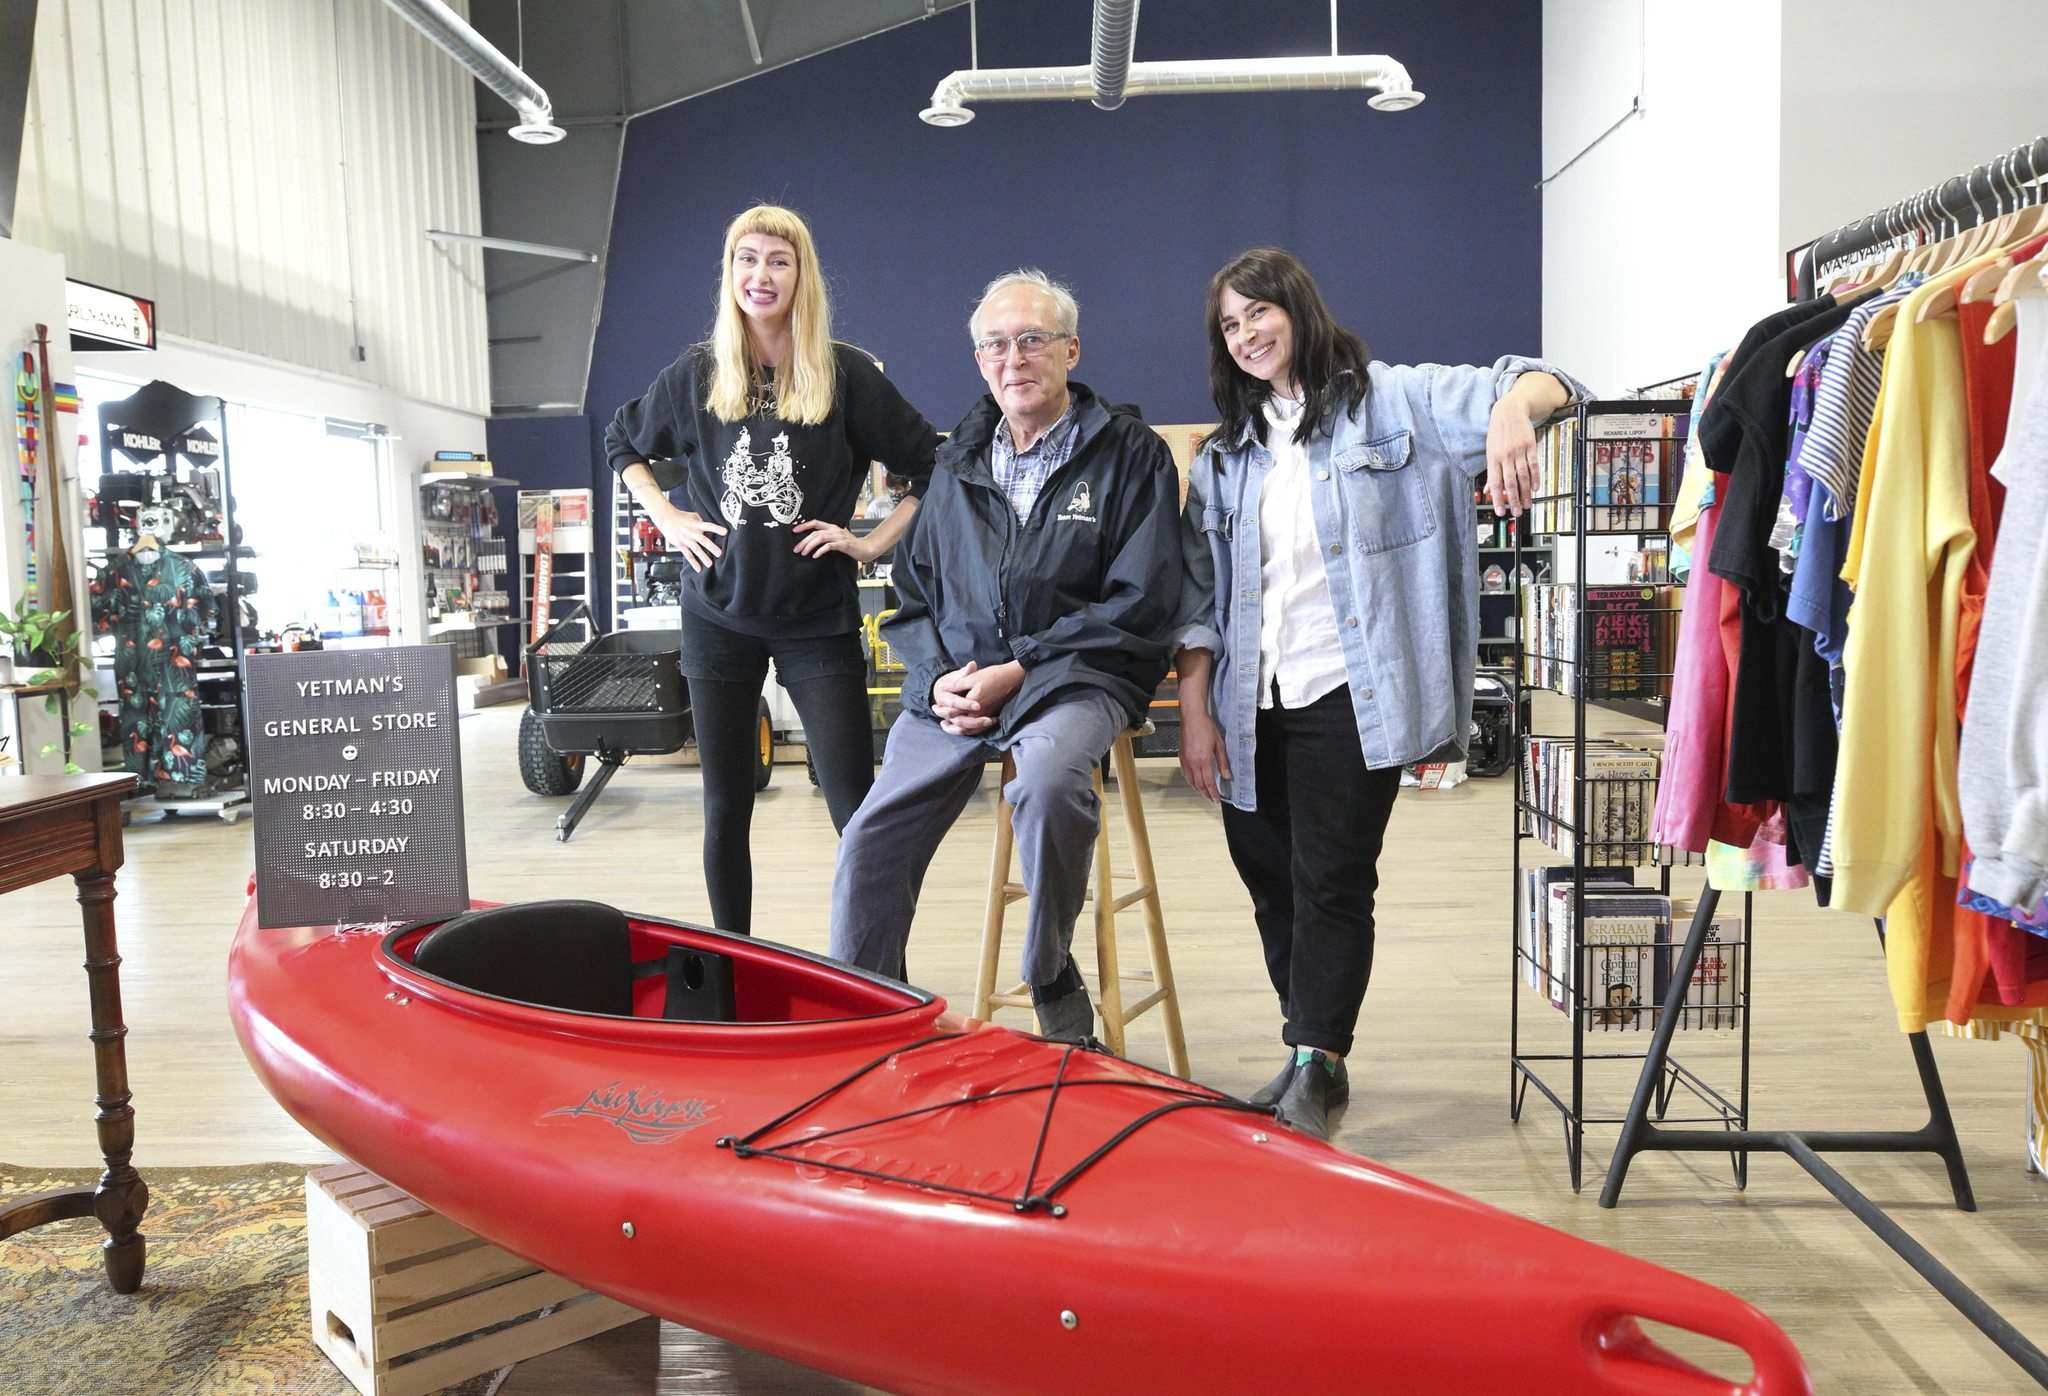 Owner Norm Yetman with daughters Kristen Yetman (left) and Megan Yetman in their store. Norm and his brother, Keith Yetman, own the store and Norm's daughters manage the new boutique inside the store. (Ruth Bonneville / Winnipeg Free Press)</p>